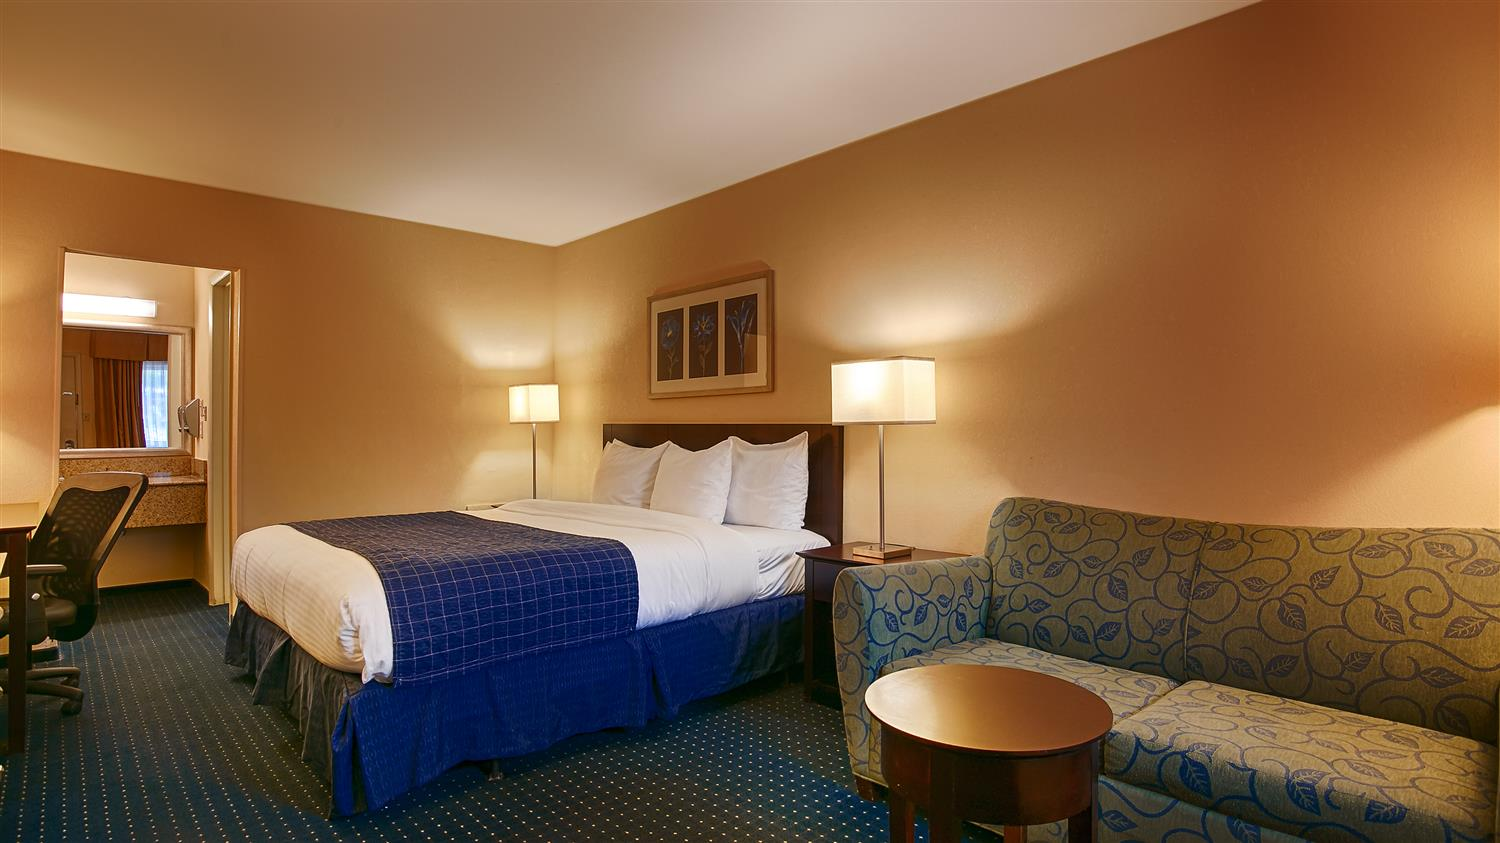 Annapolis Hotels | BEST WESTERN Annapolis | Hotels in Annapolis